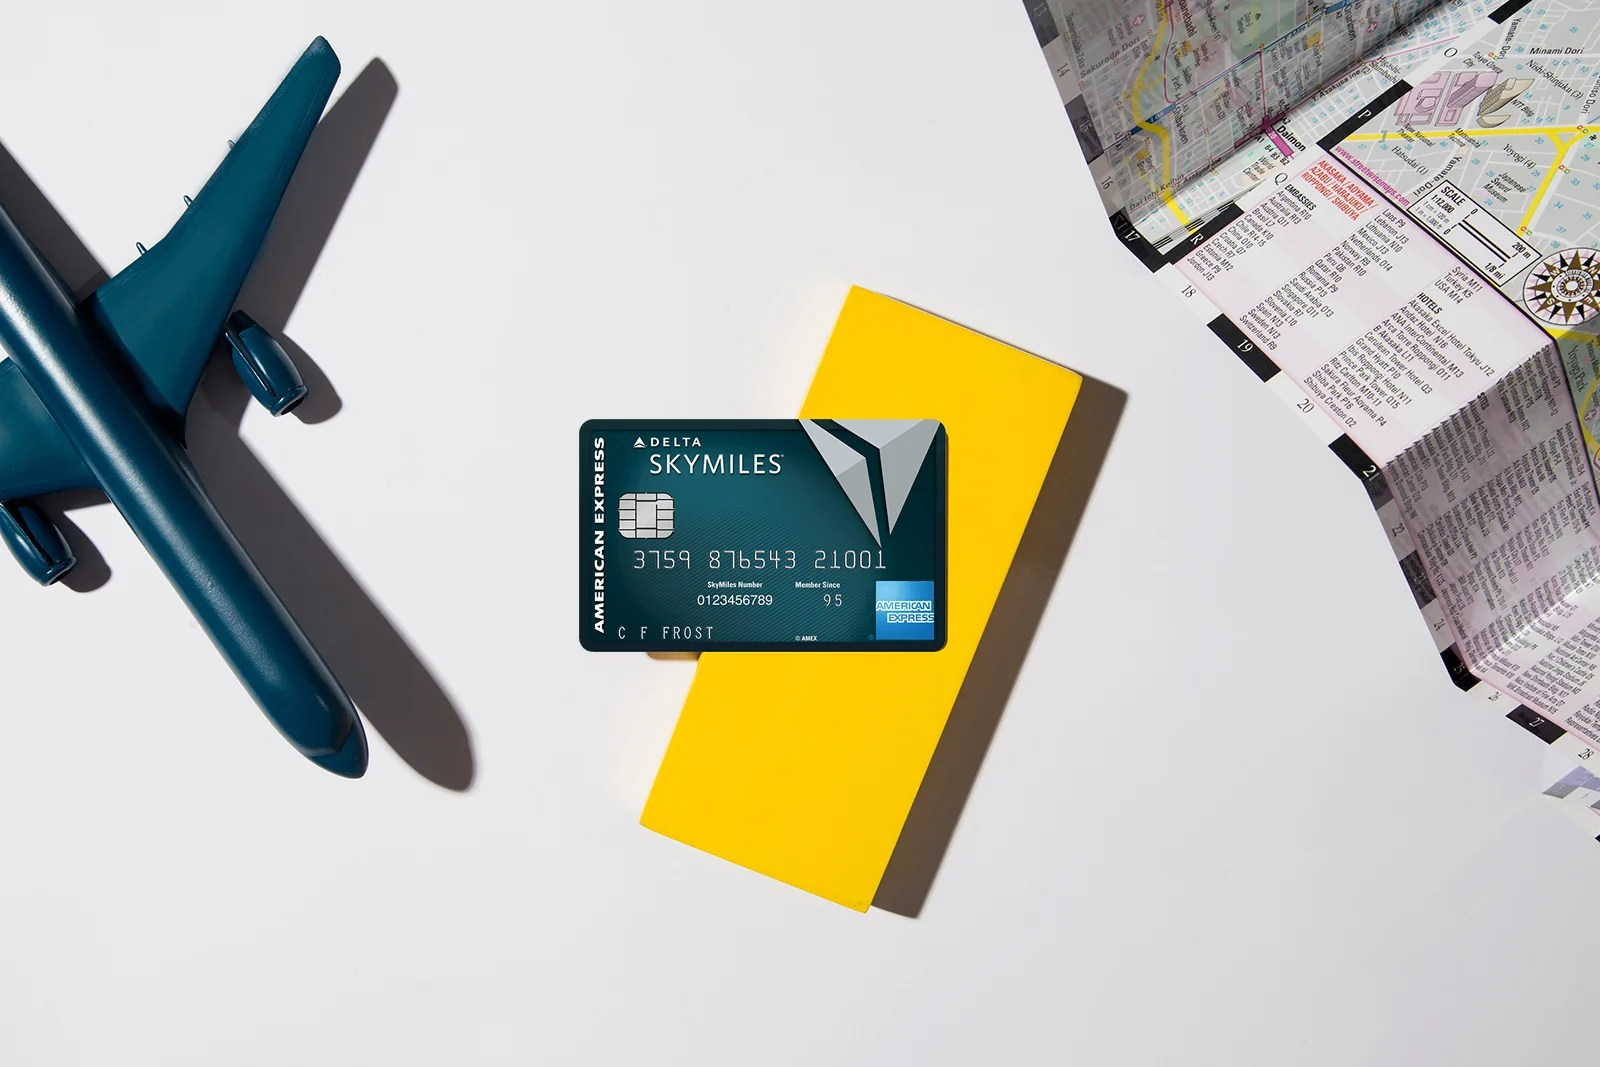 Delta Reserve Credit Card From American Express Review